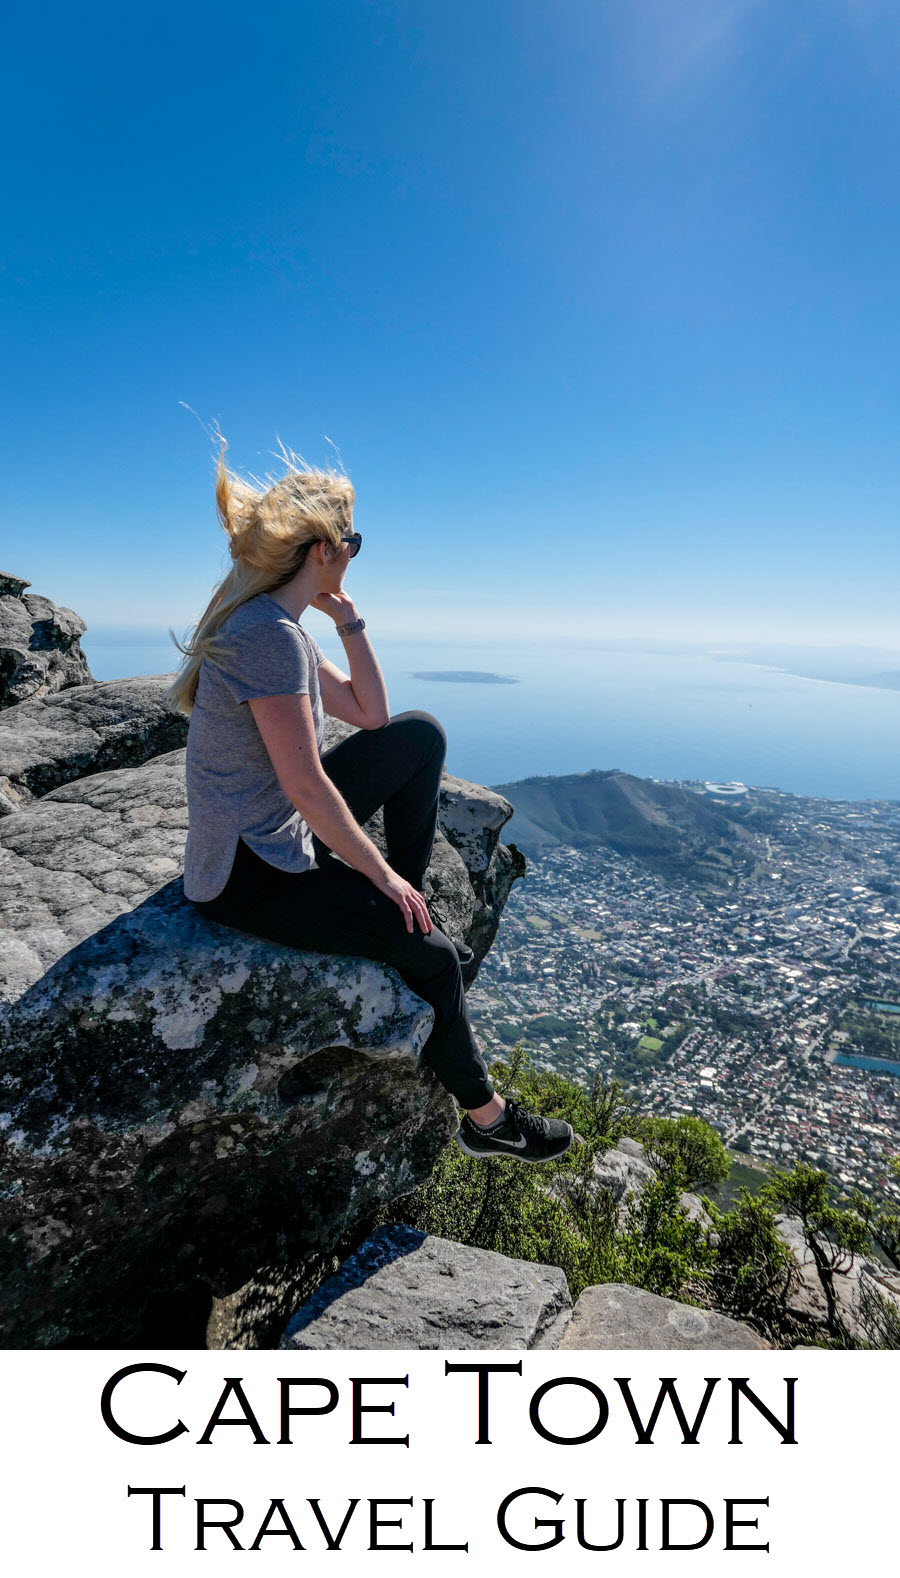 3 Days in Cape Town Travel Guide. See Antarctica penguins, Robben Island, Table Mountain, and Boa Kaap #africa #southafrica #capetown #travel #travelpics #travelblog #wanderlust #travelguide #lpworldravels